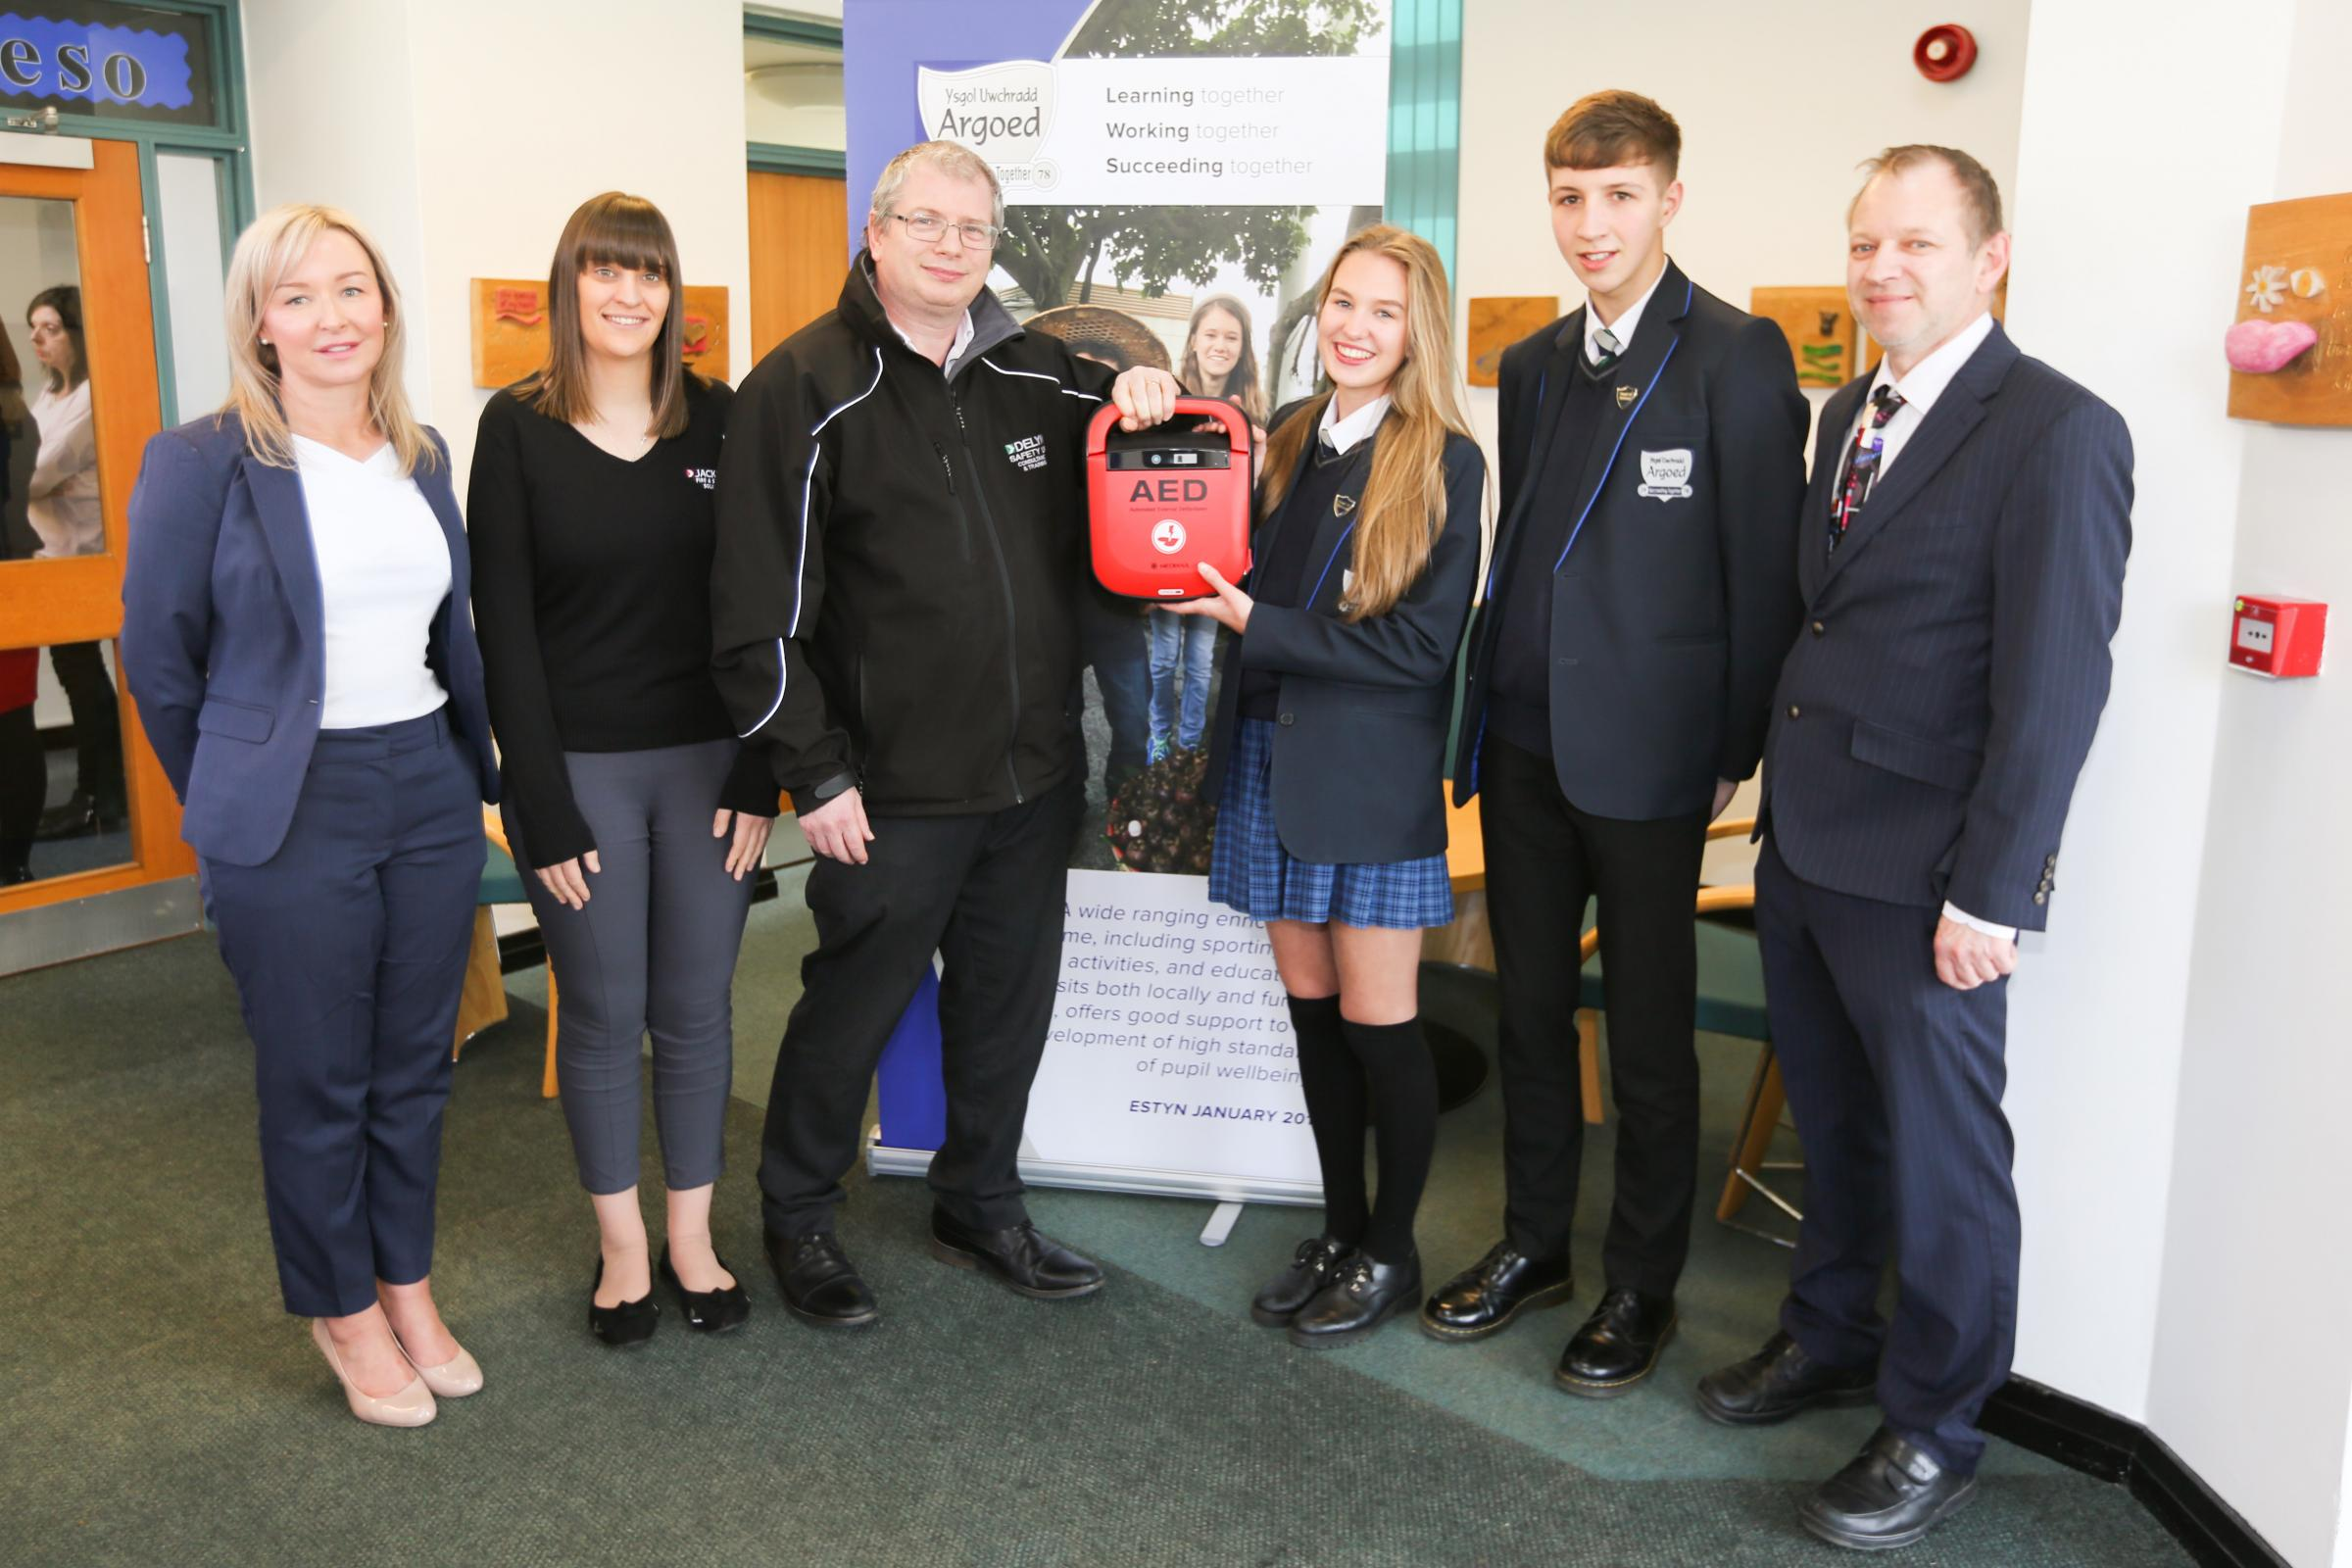 Businesses donate life-saving defibrillator to Argoed High in Mynydd Isa